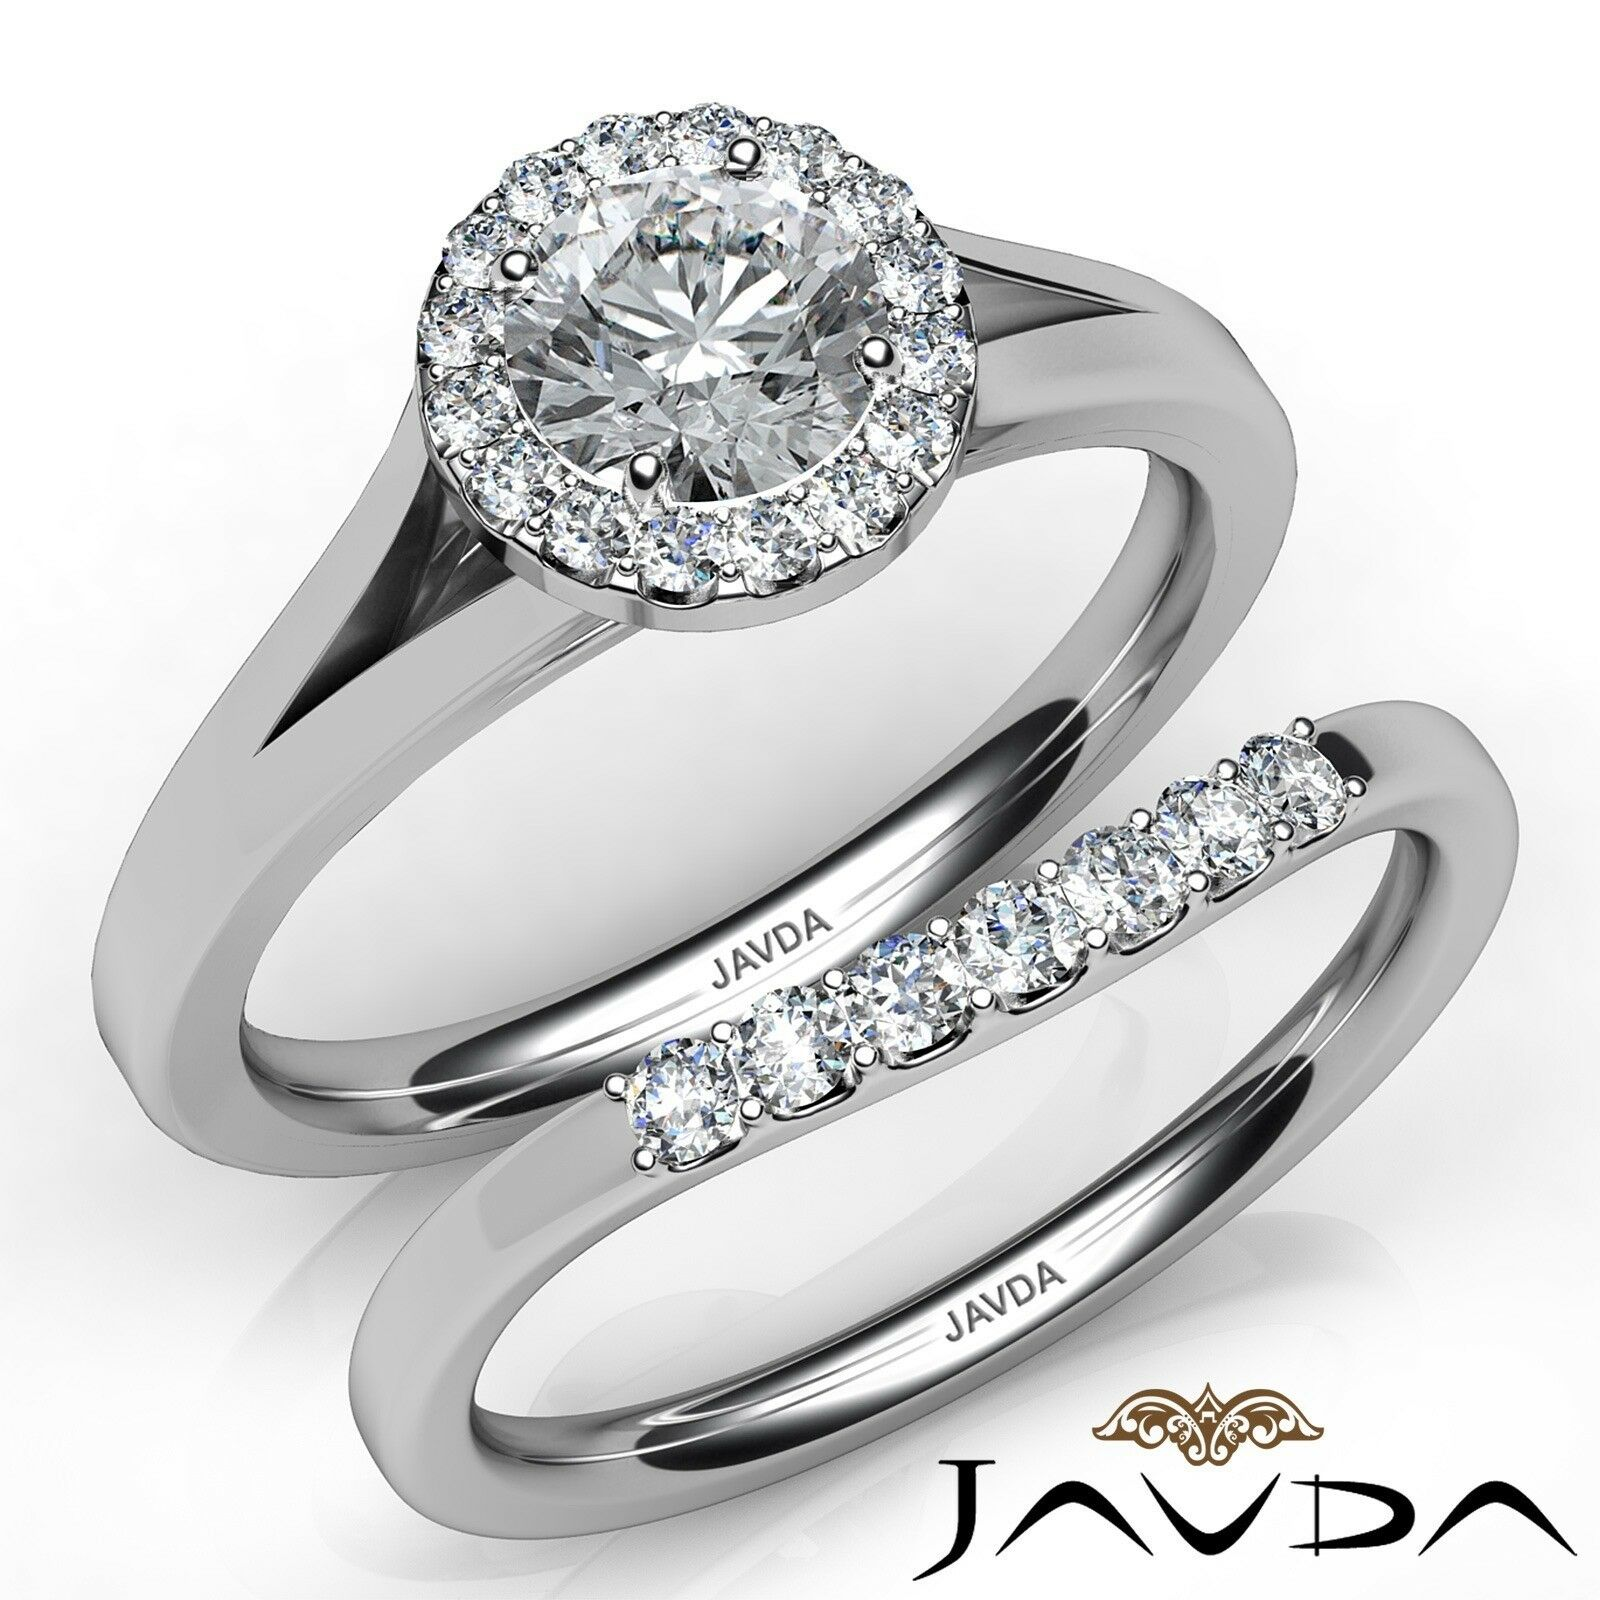 1.02ctw Classic Bridal Halo Pave Round Diamond Engagement Ring GIA F-VS1 W Gold